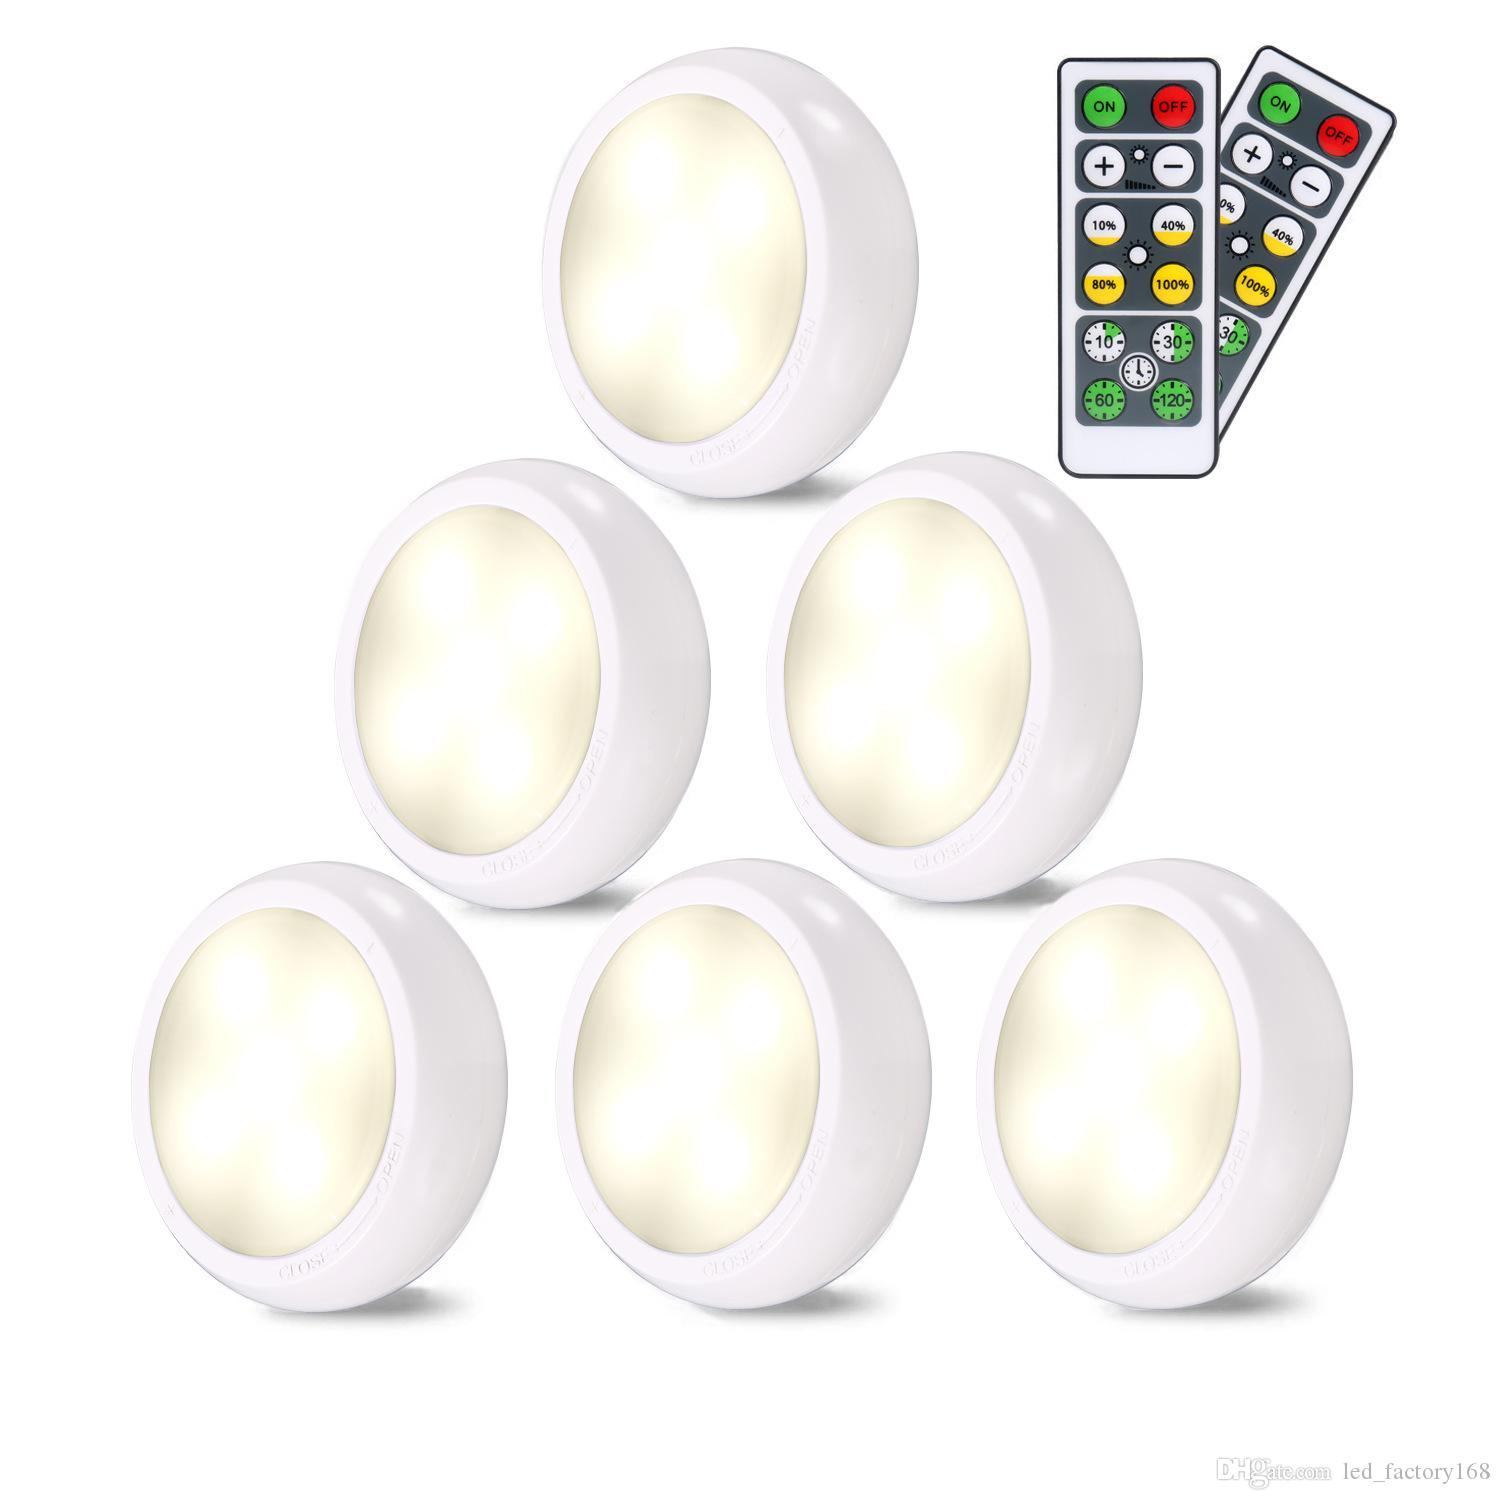 2020 Led Puck Lights Wireless Led Puck Lights Battery Operated 4000k Natural White 6 Pack Kitchen Under Cabinet Lighting Wireless Closet Lights From Led Factory168 9 05 Dhgate Com - Get Wireless Battery Operated Under Cabinet Lighting Pictures